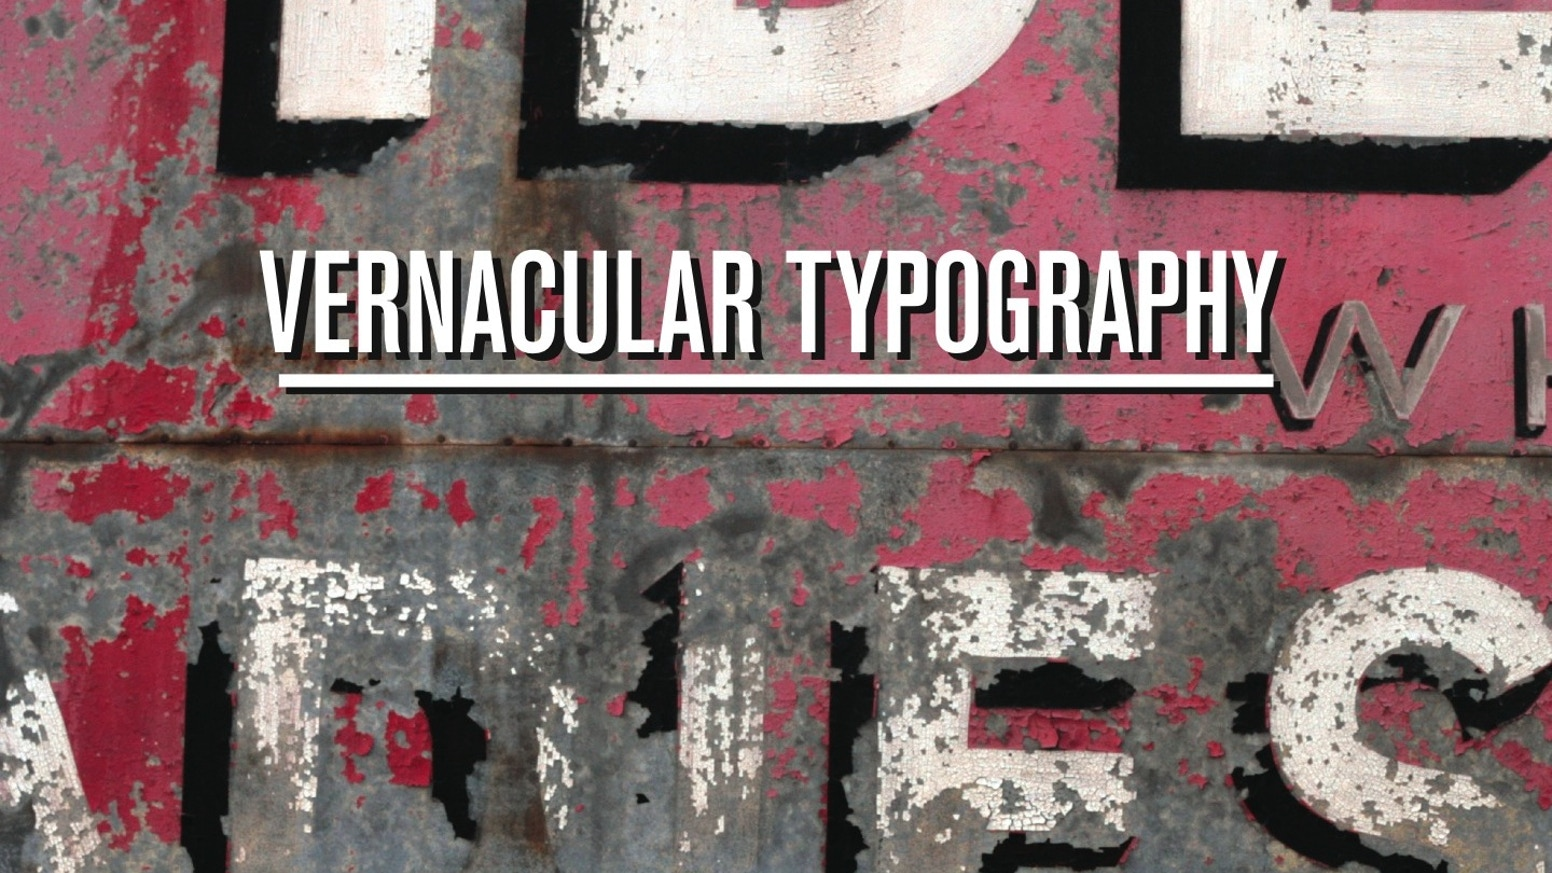 Vernacular Typography By Molly Woodward Kickstarter